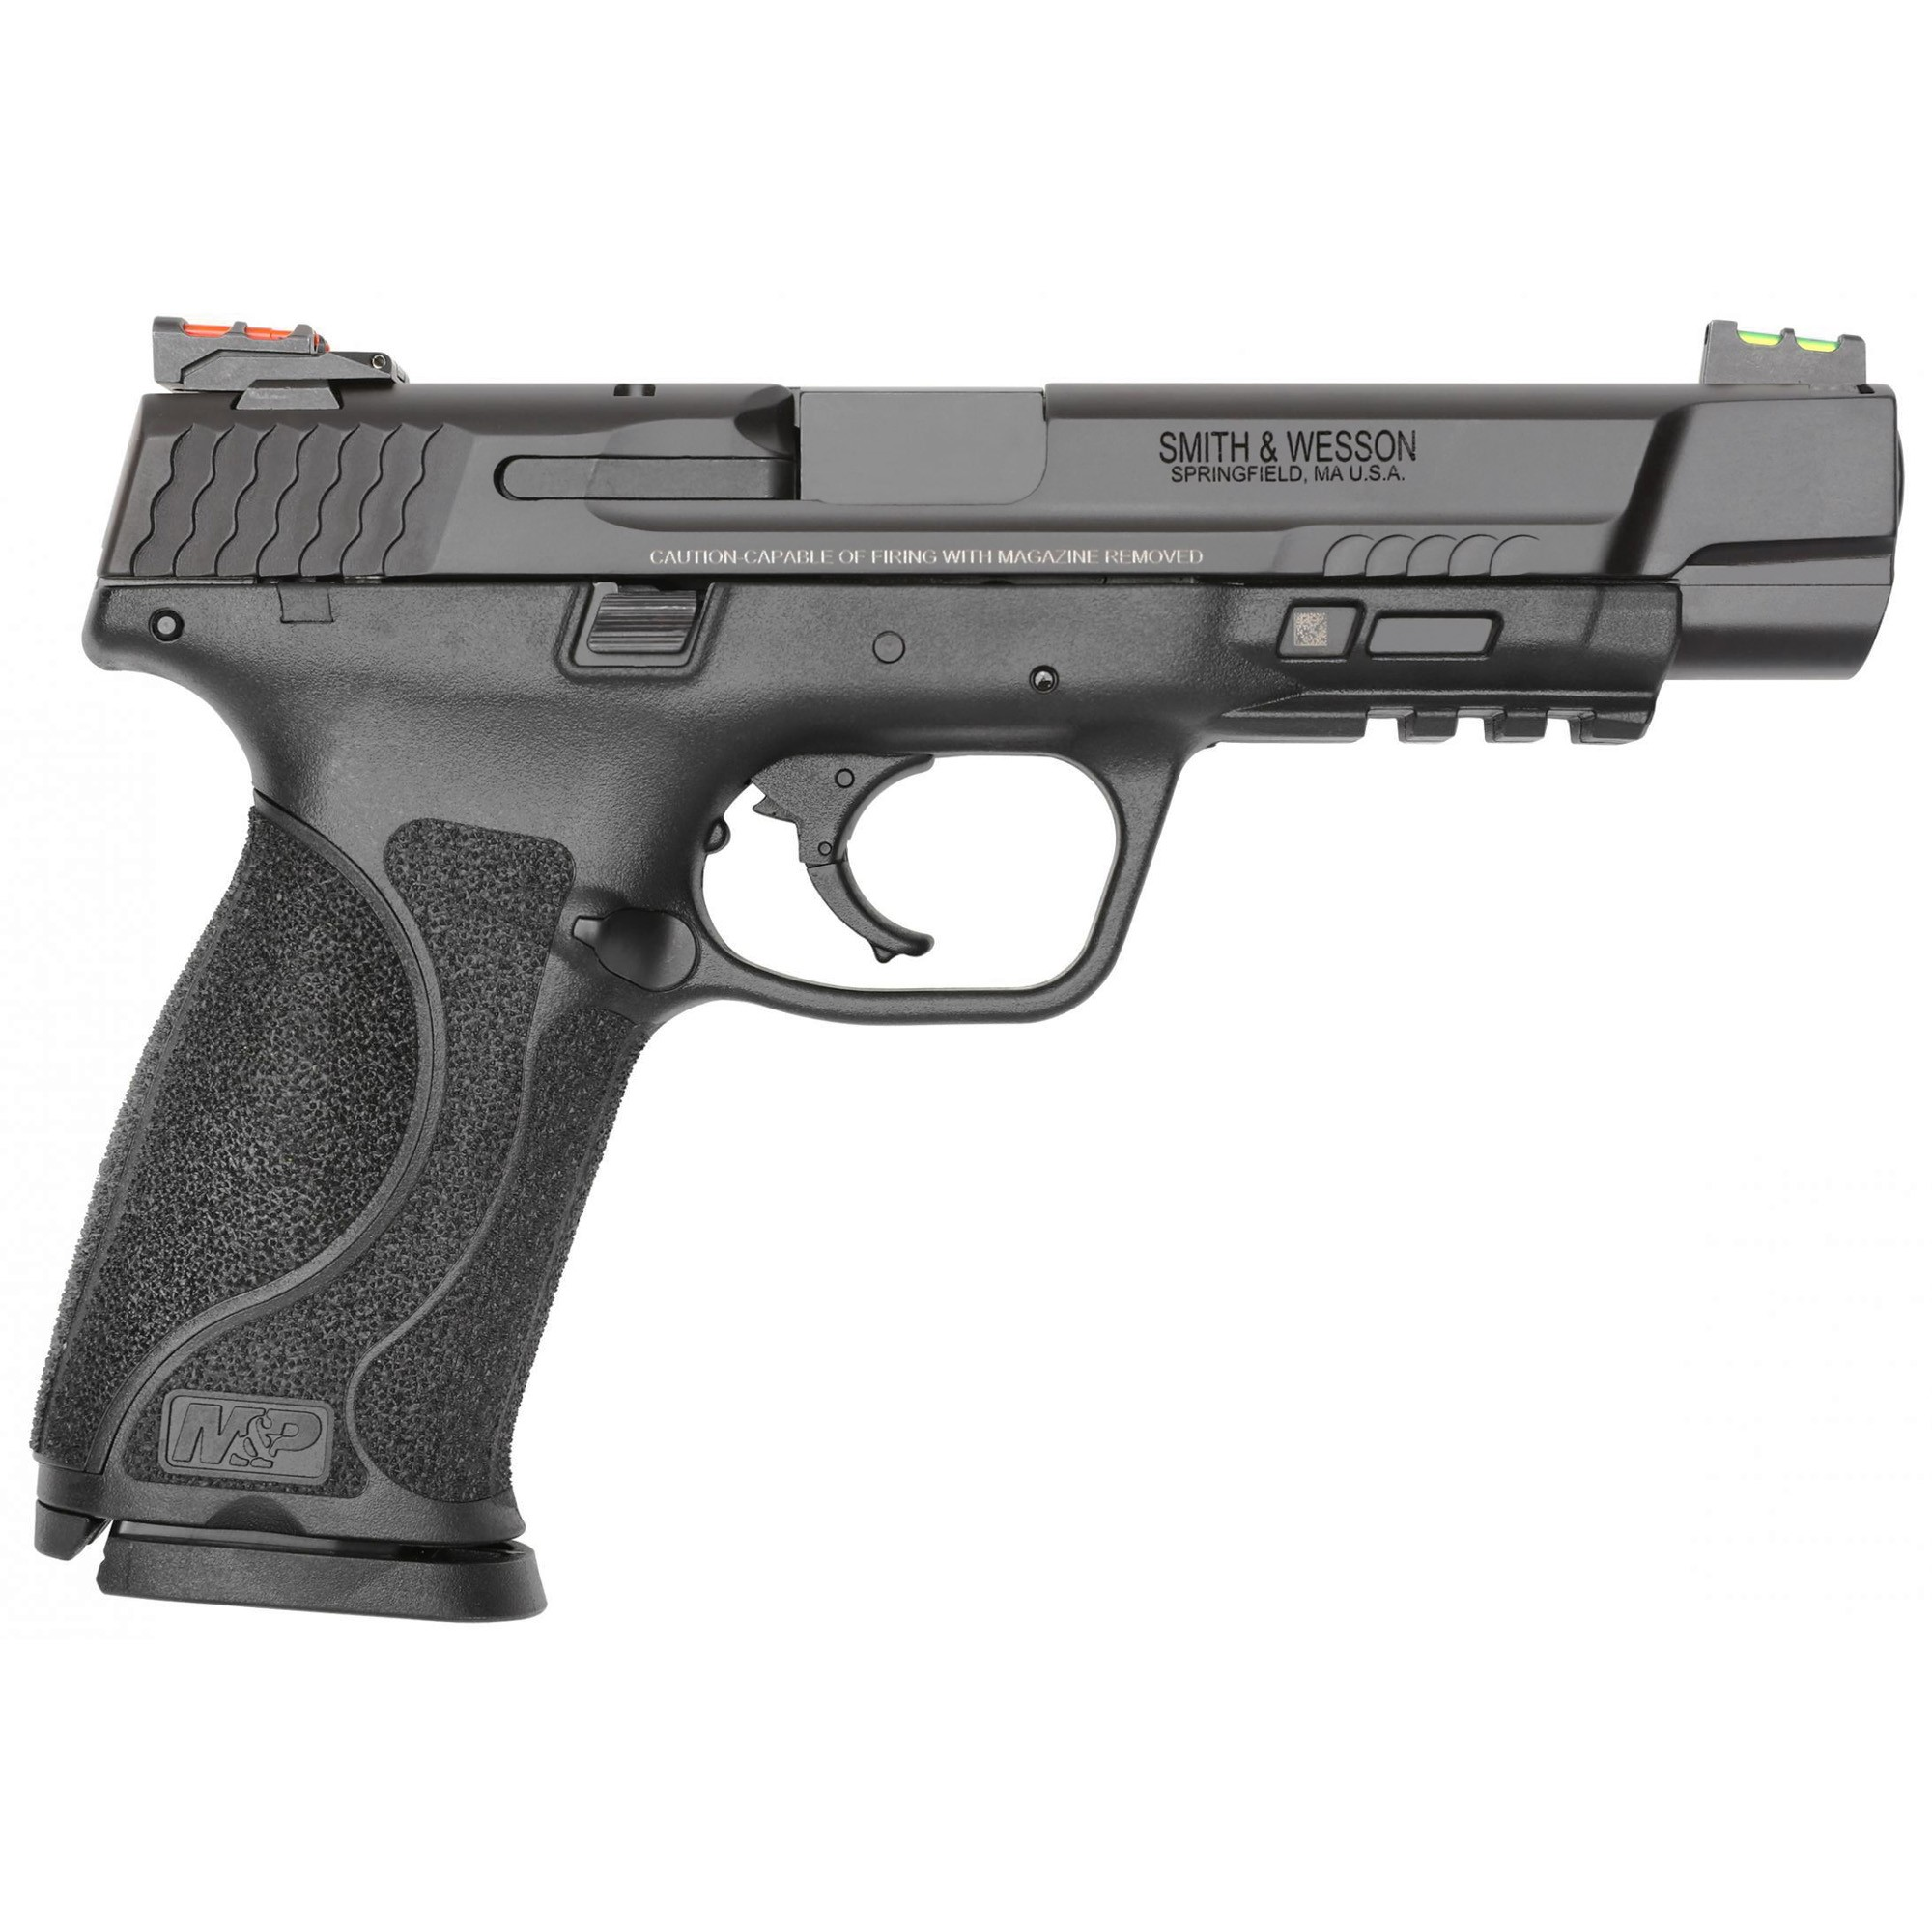 Smith & Wesson 11820 M&P 9 Performance Center M2.0 5.00in. 5in. 17+1 Black Armornite Stainless Steel Black Synthetic Grip